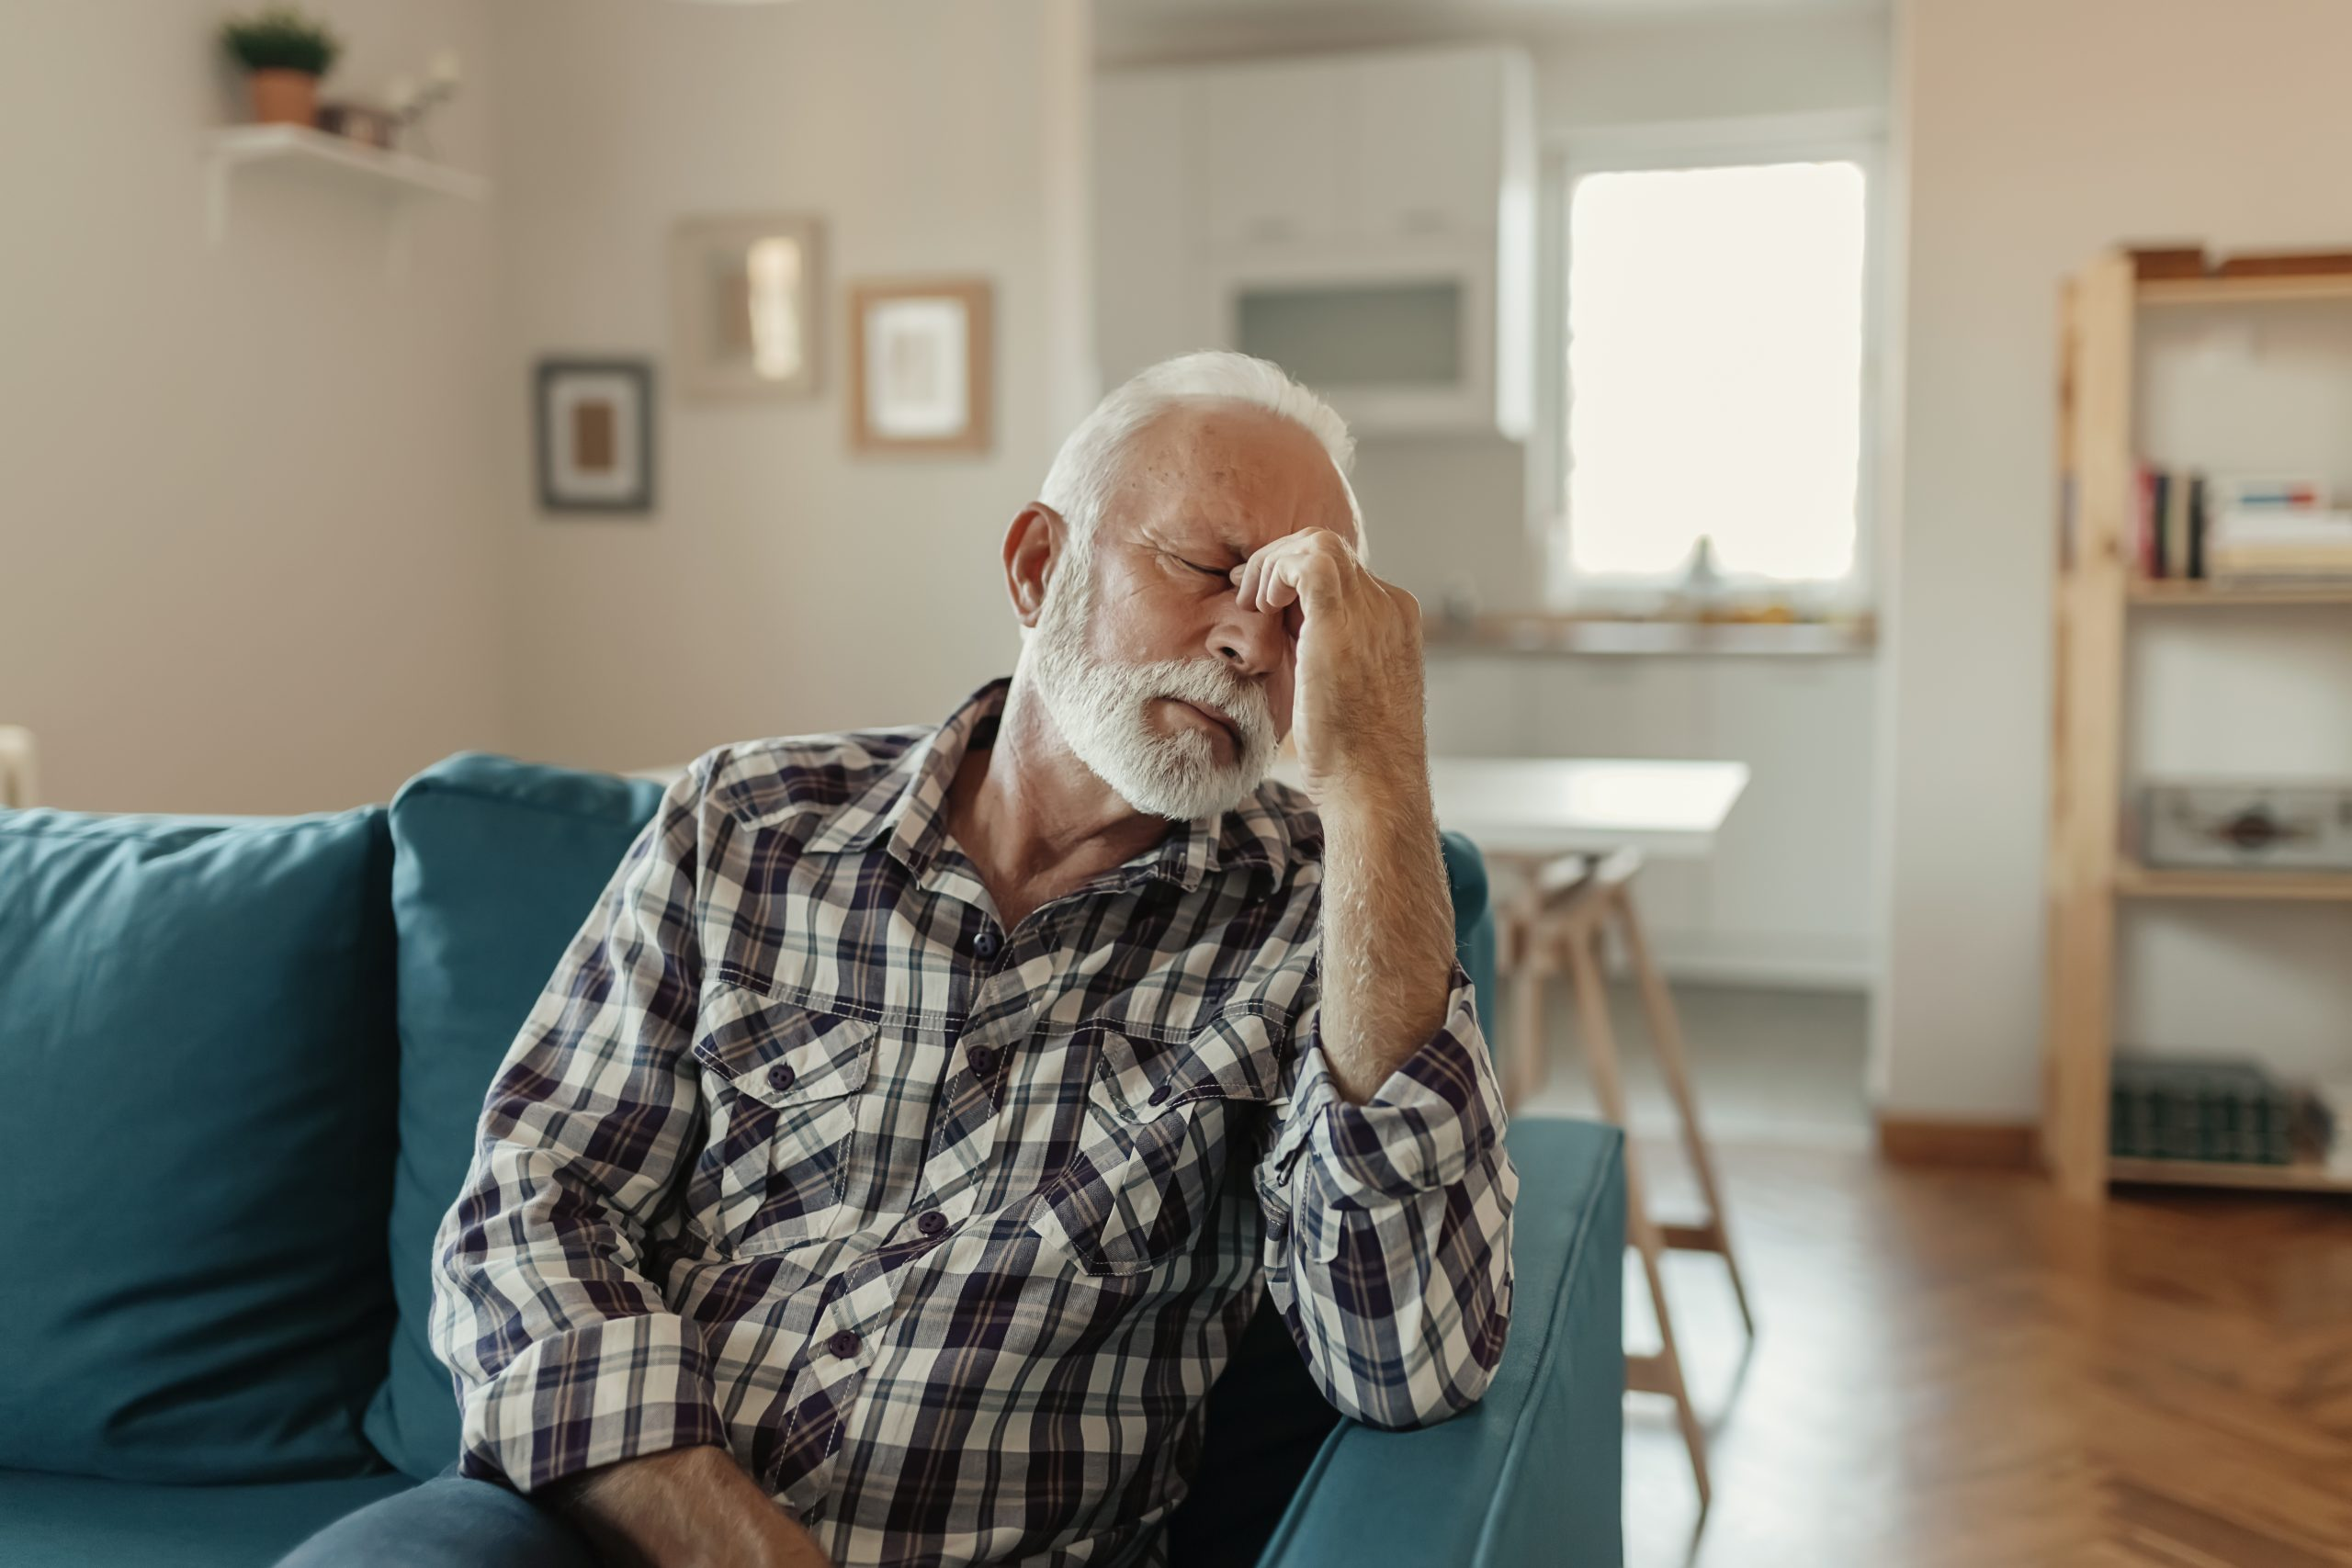 White man with a gray beard sitting on a couch, pinching the bridge of his nose and appearing in pain. Car accident injury symptoms are sometimes subtle.